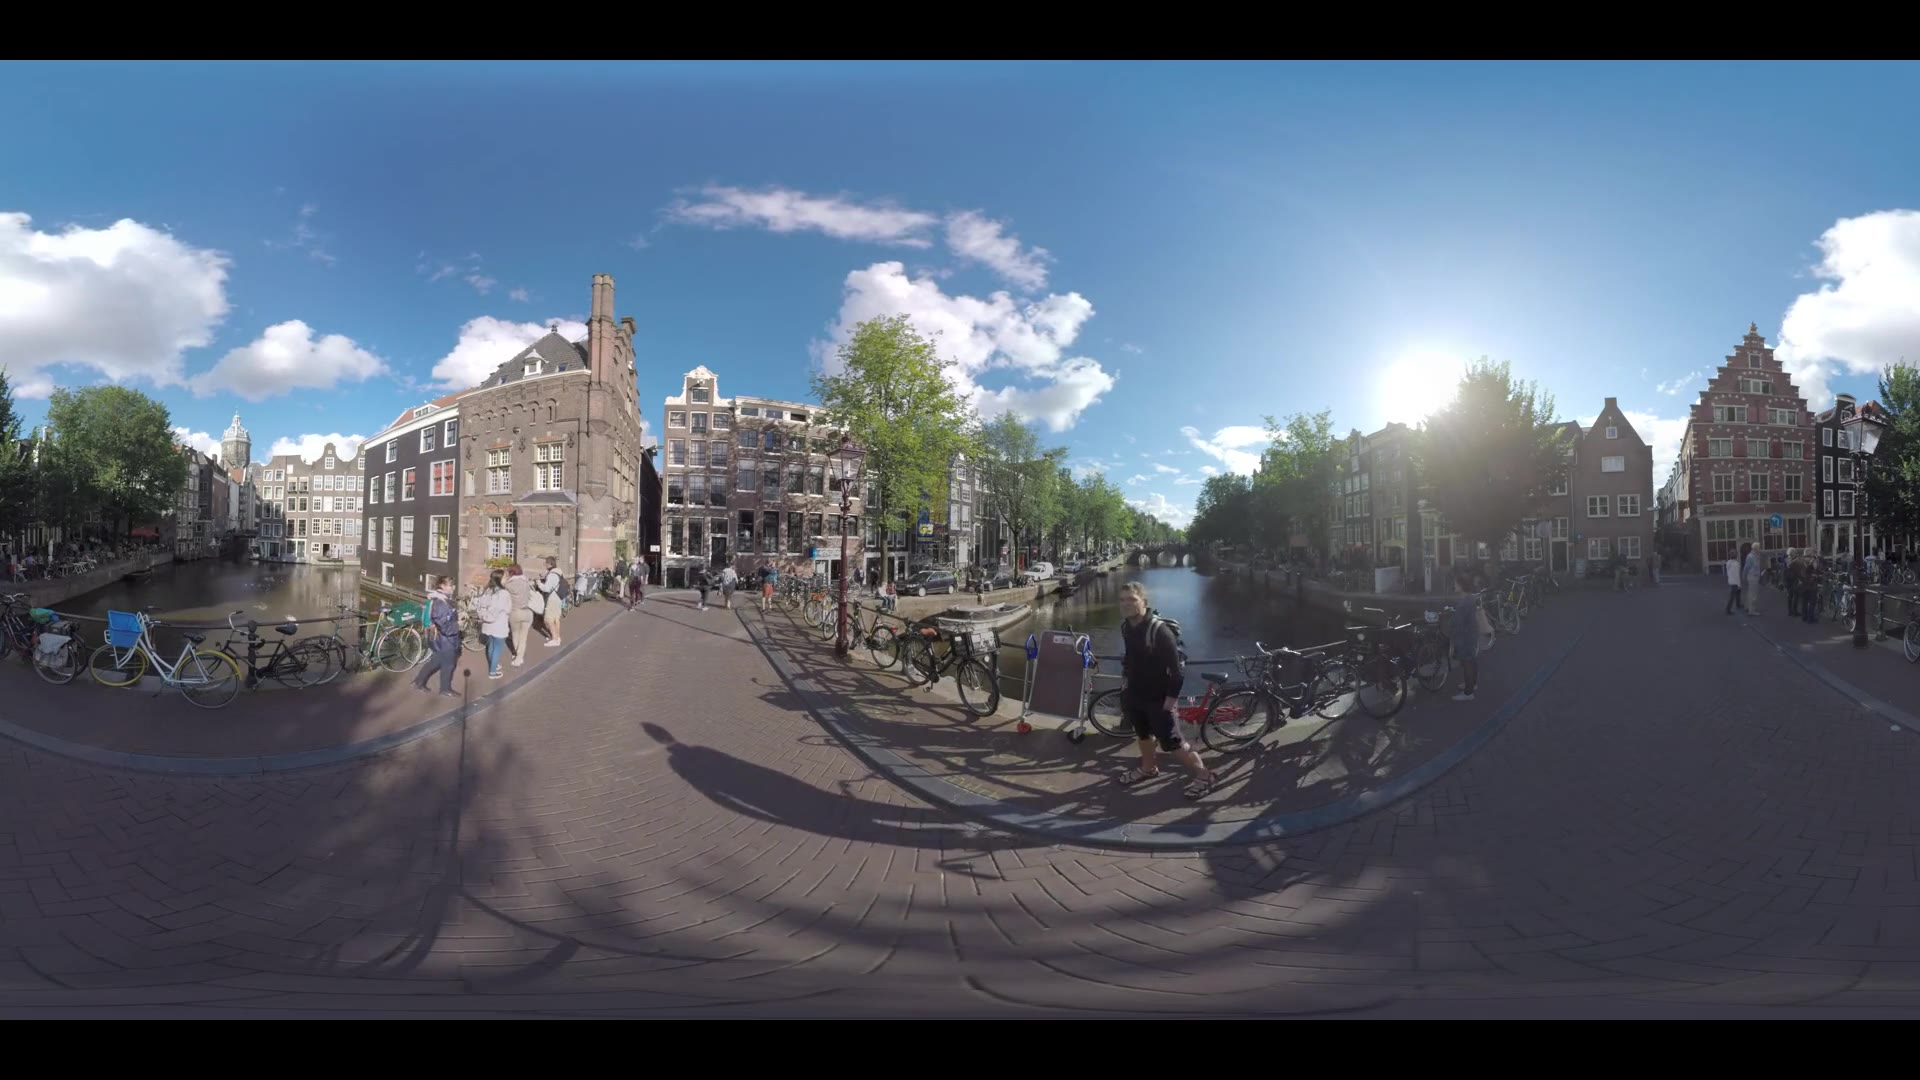 AMSTERDAM, NETHERLANDS - AUGUST 09, 2016: 360 VR Video. People walking across Armbrug leading over the canal. Cityscape with waterside street and Dutch houses